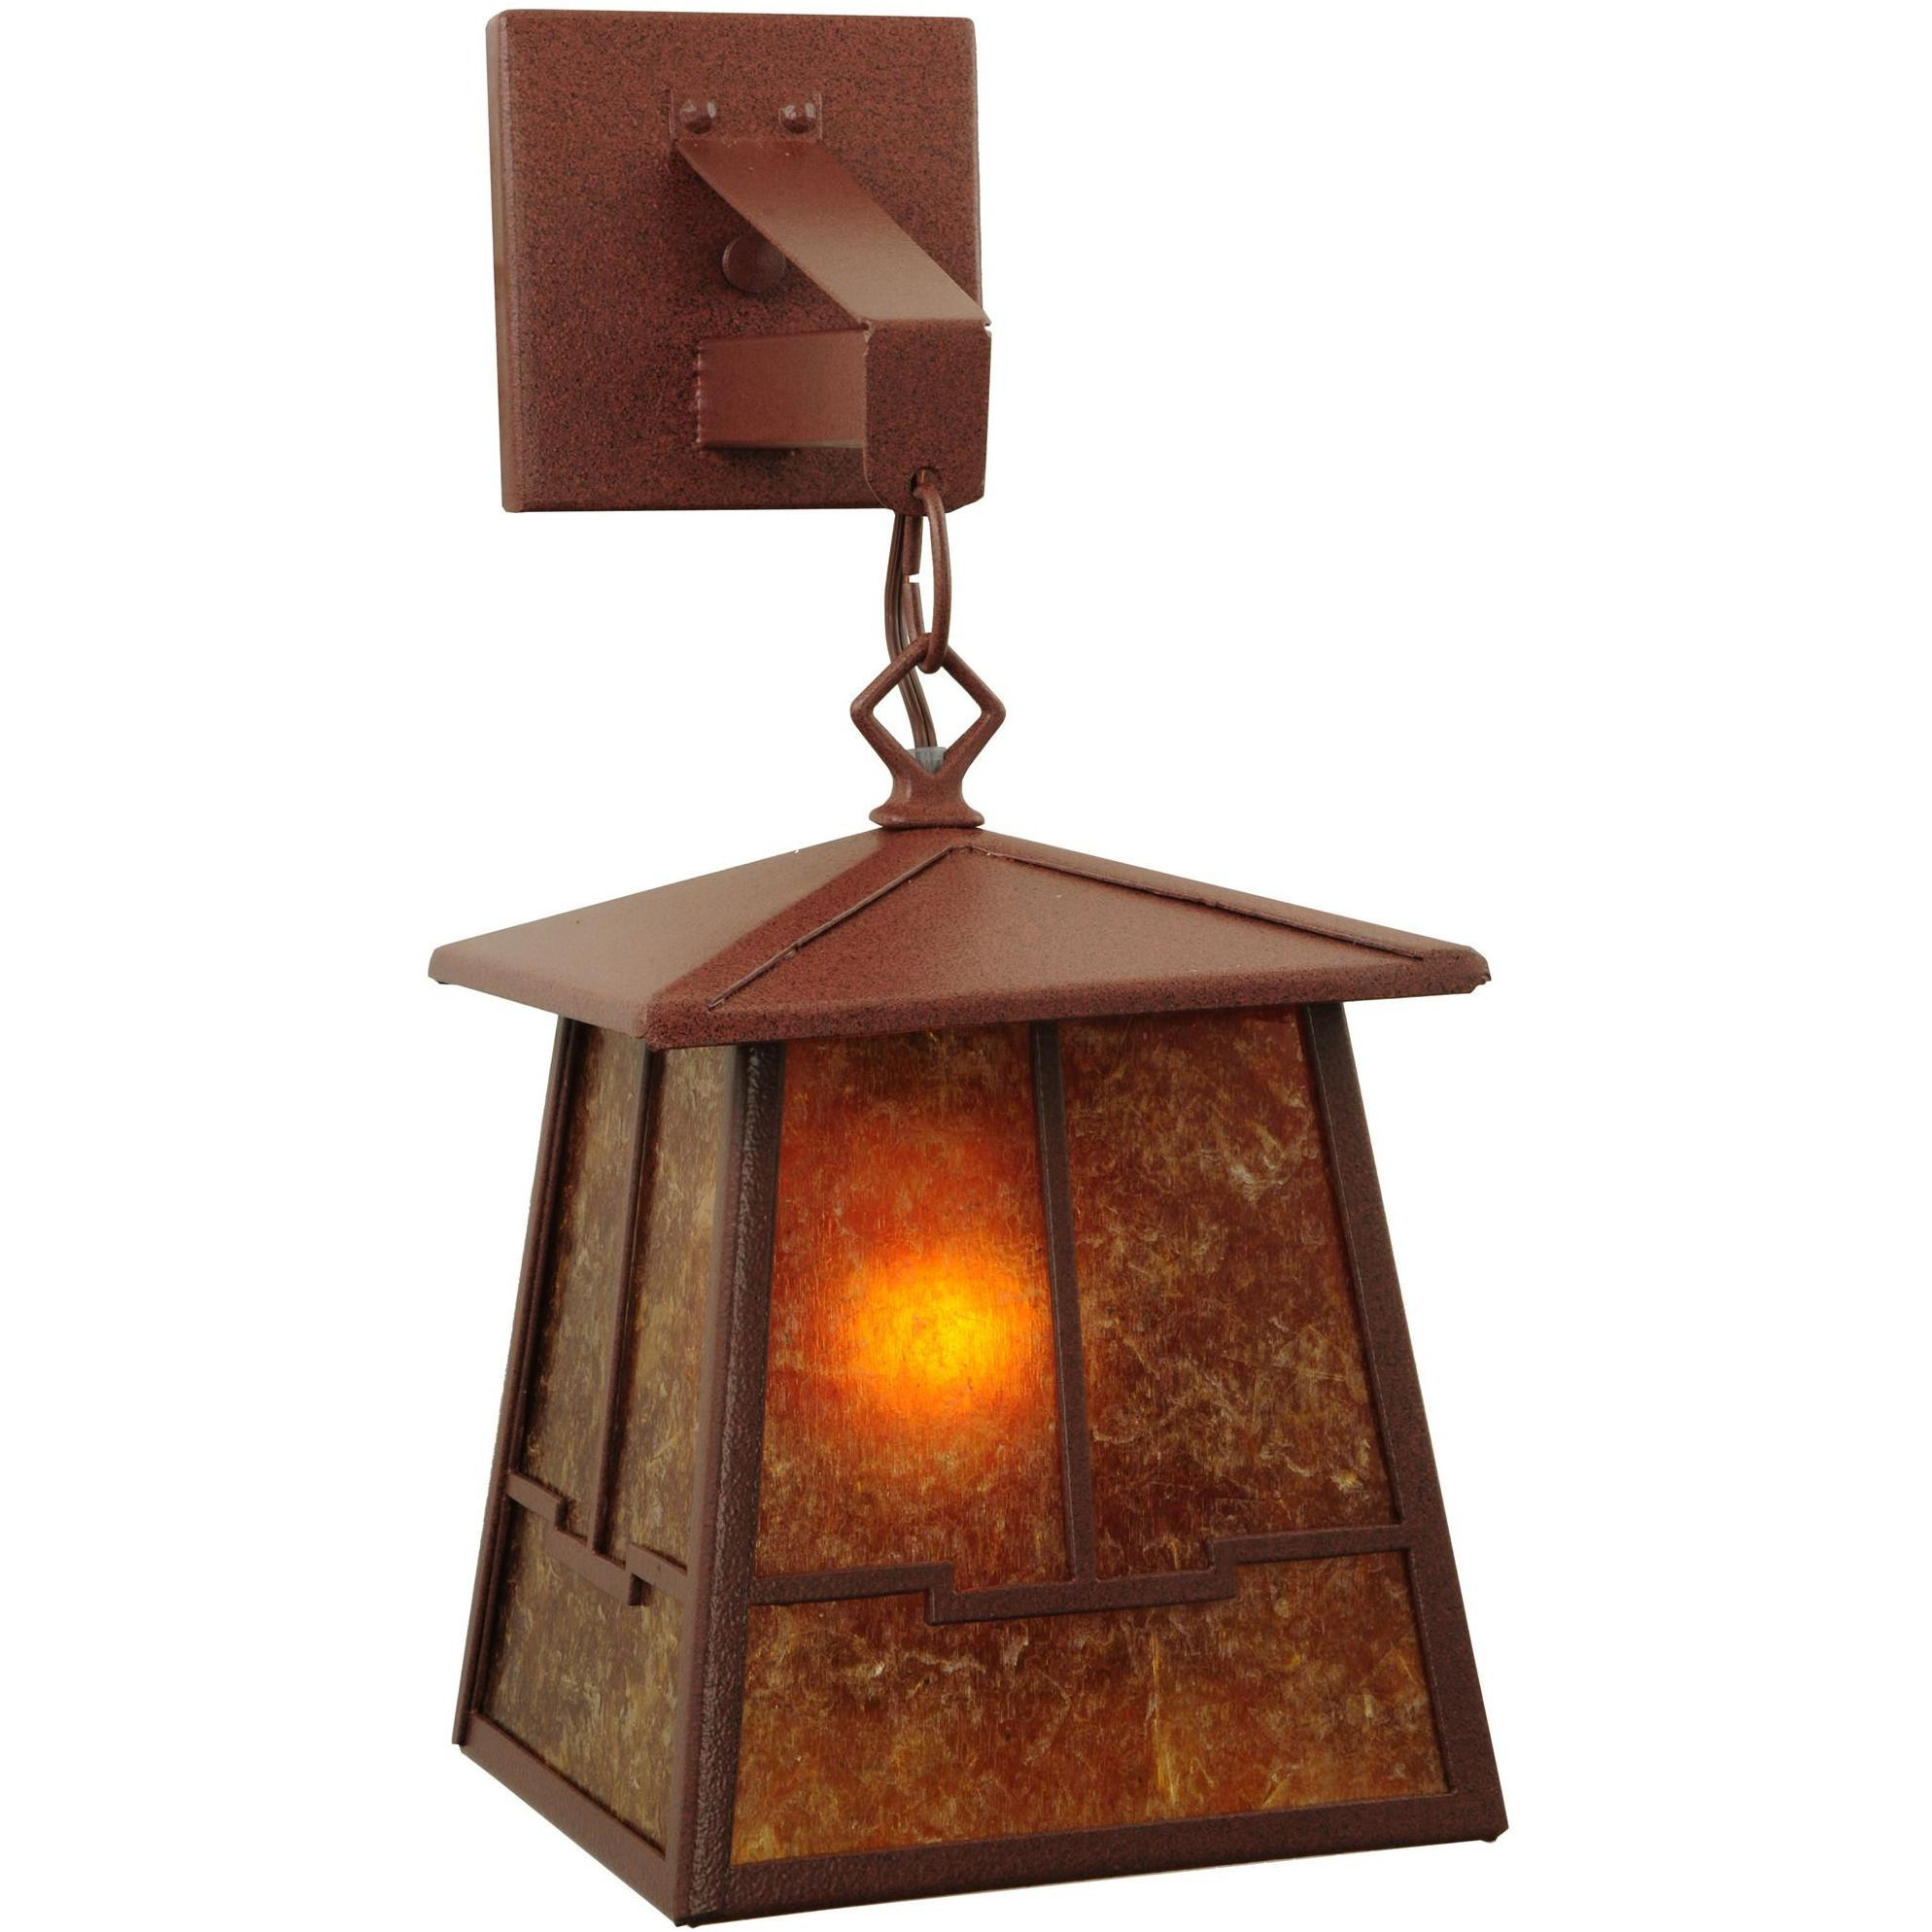 7 Inch W Bungalow Valley View Hanging Wall Sconce - Custom Made ...